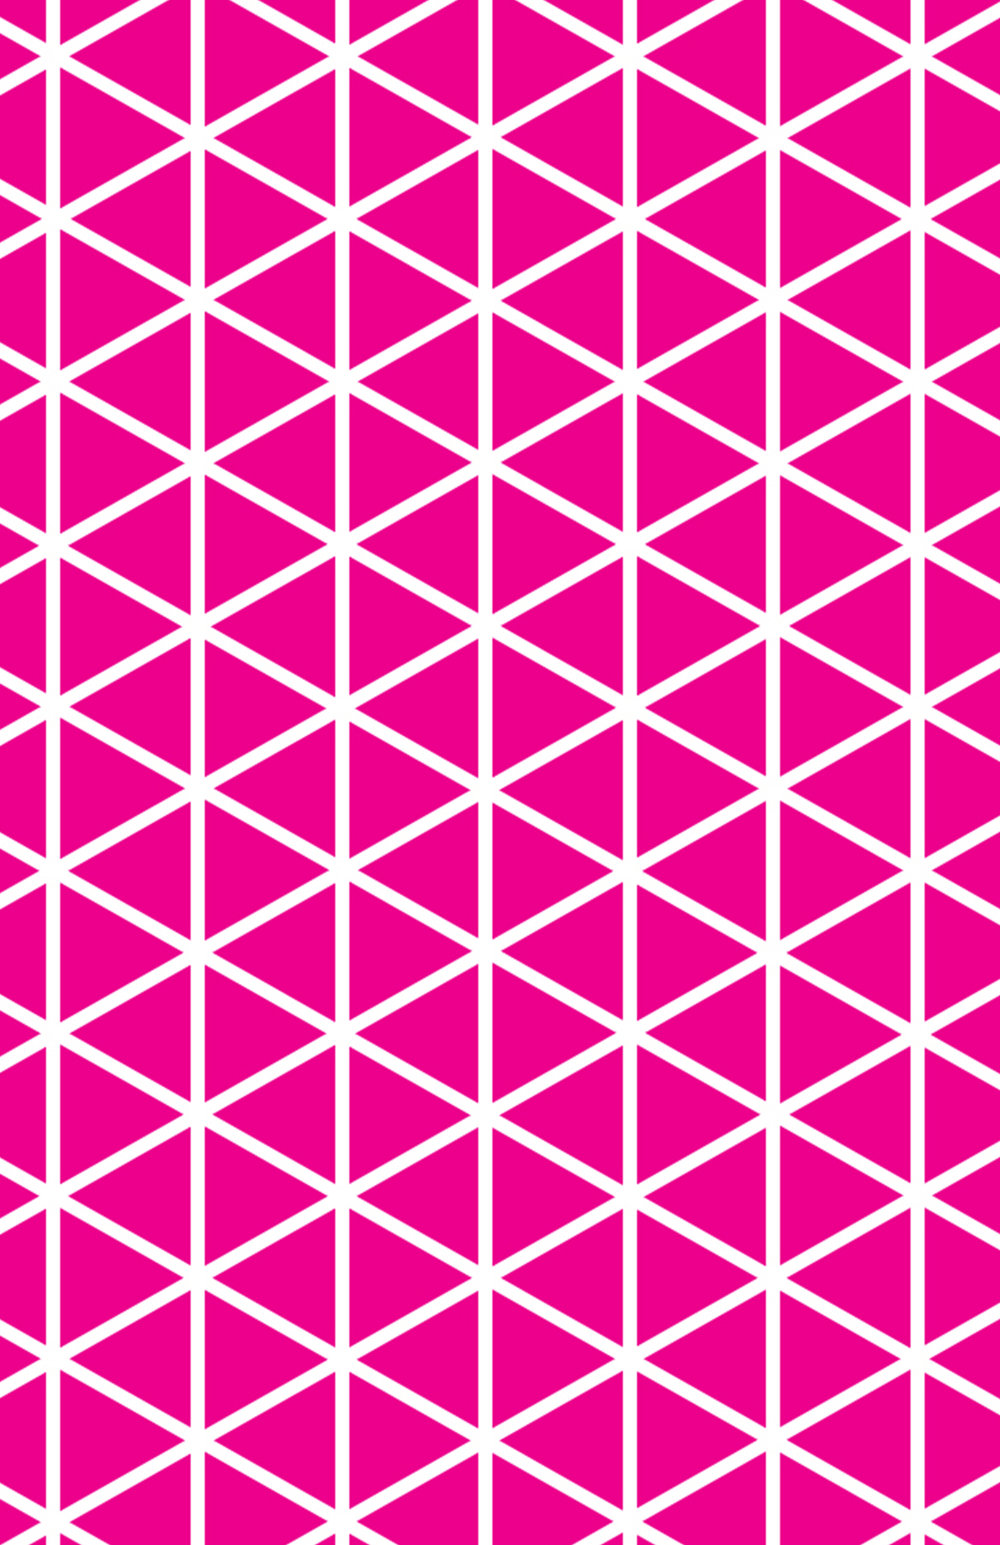 pink triangles front.jpg